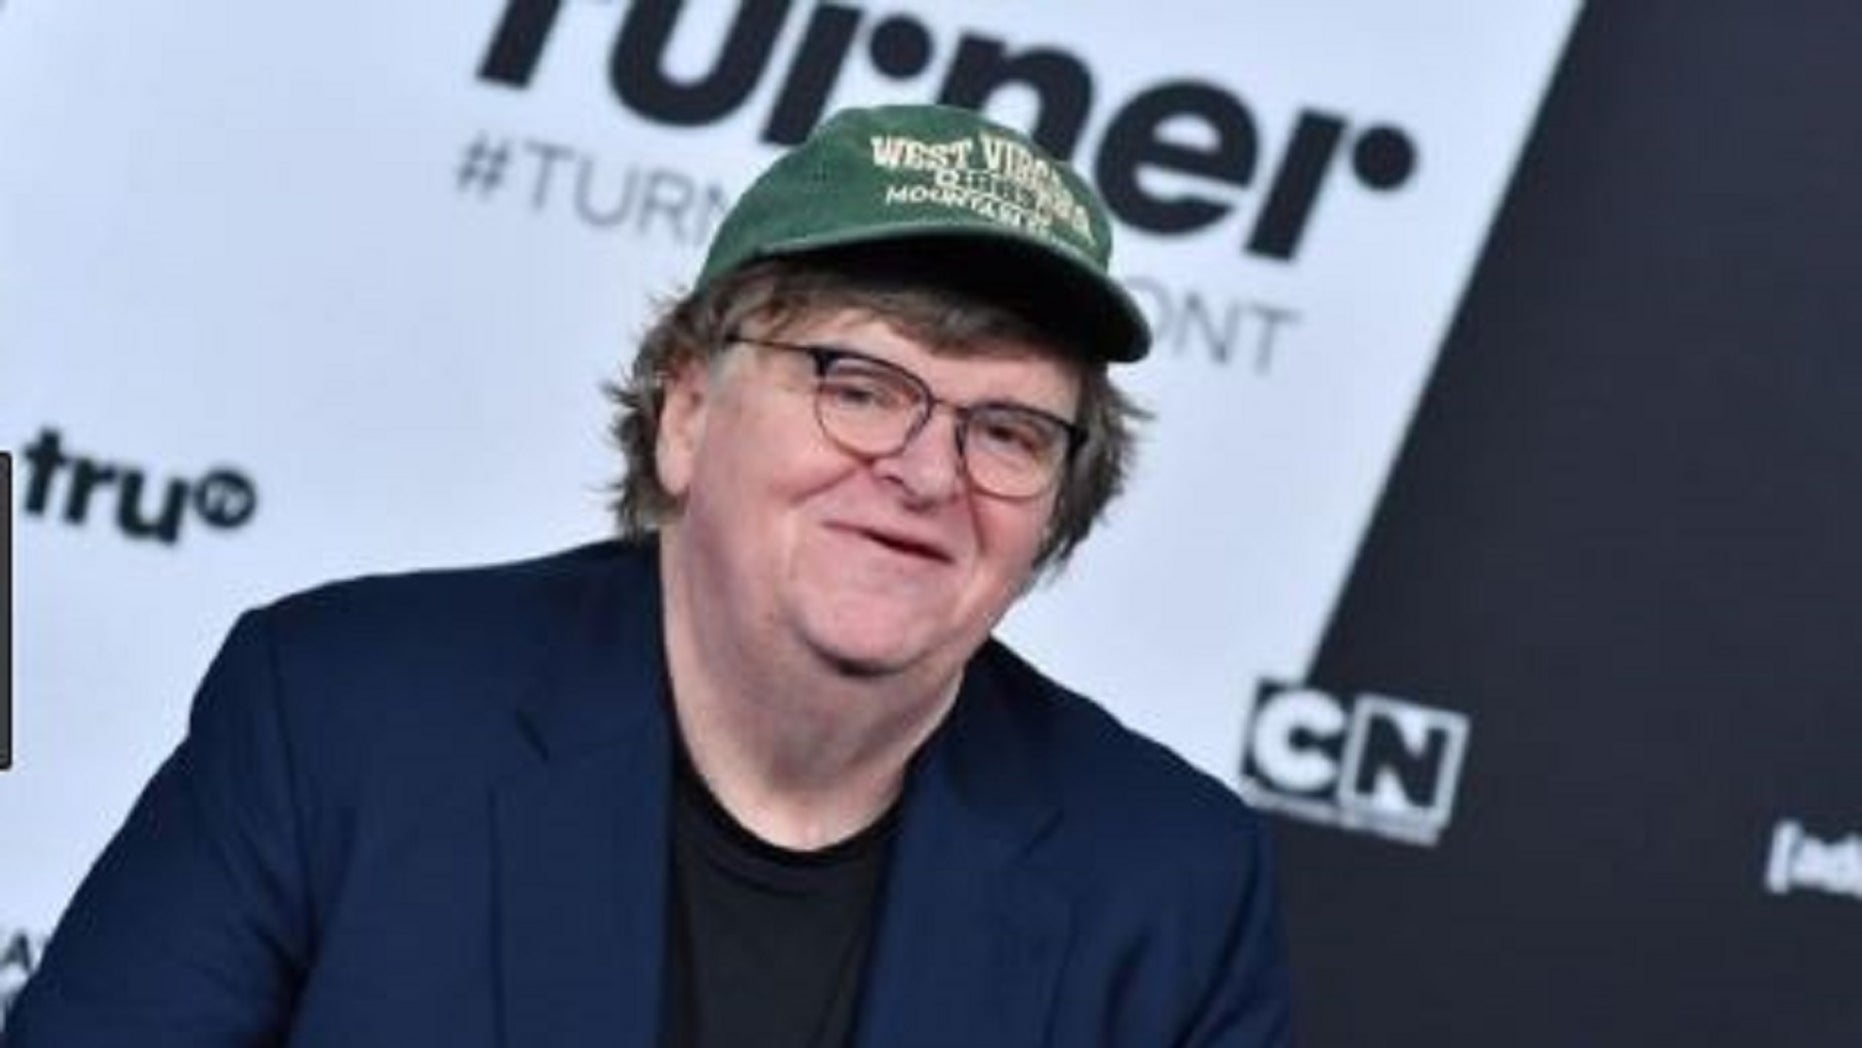 Documentary filmmaker Michael Moore says Alexandria Ocasio-Cortez is the de facto leader of the Democratic Party.